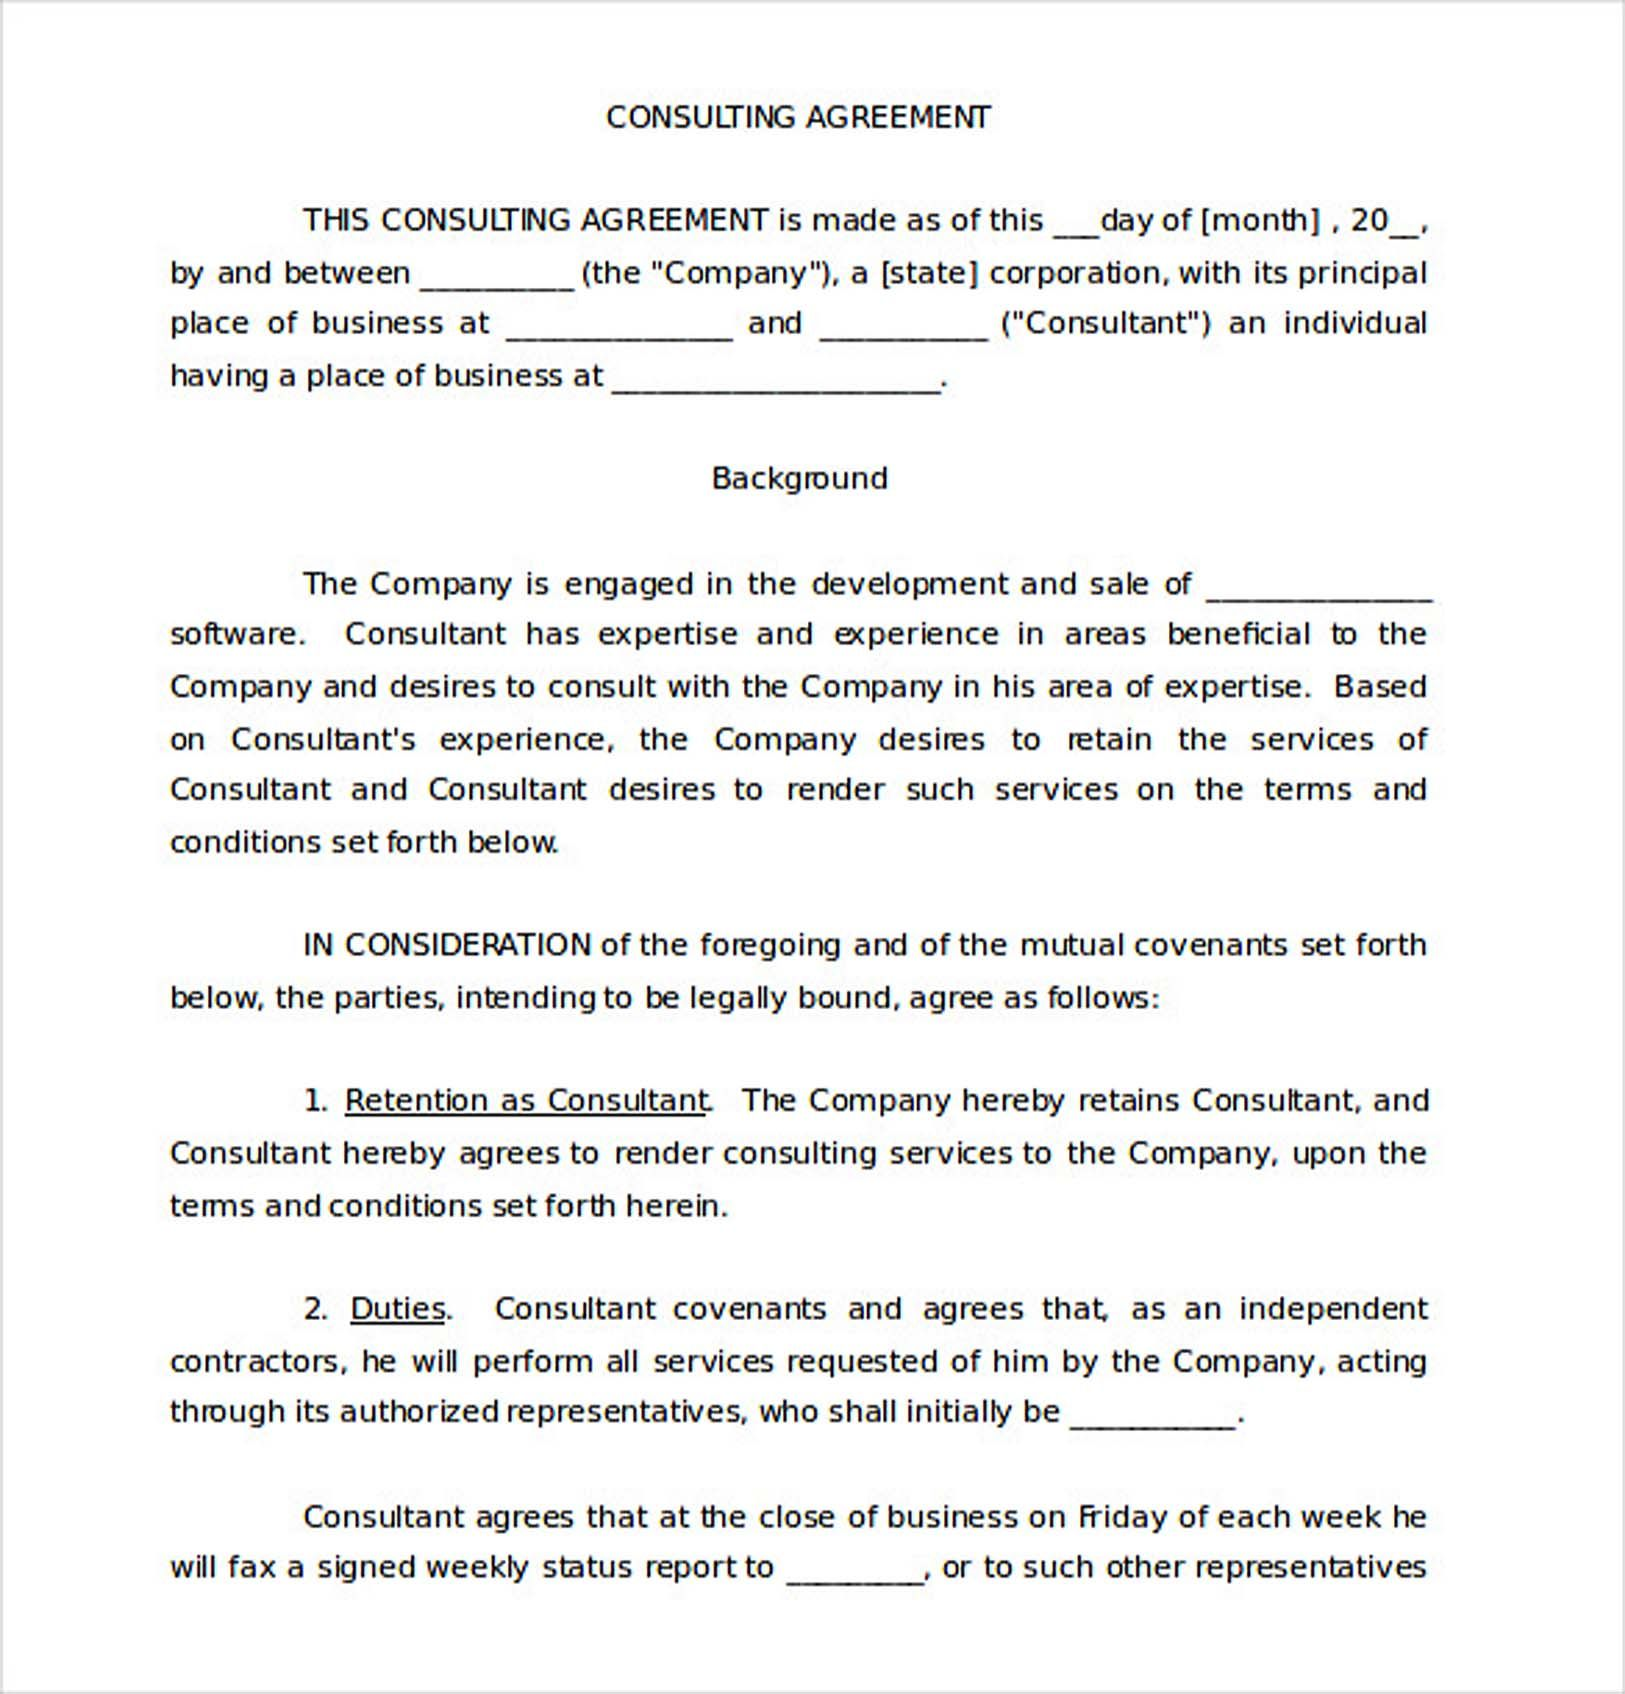 Whereas the employer desires to retain the services of the employee,. Free Consulting Agreement Template 9 Consulting Agreement Template Understanding About Consulting Contract Template Consulting Business Tutoring Business